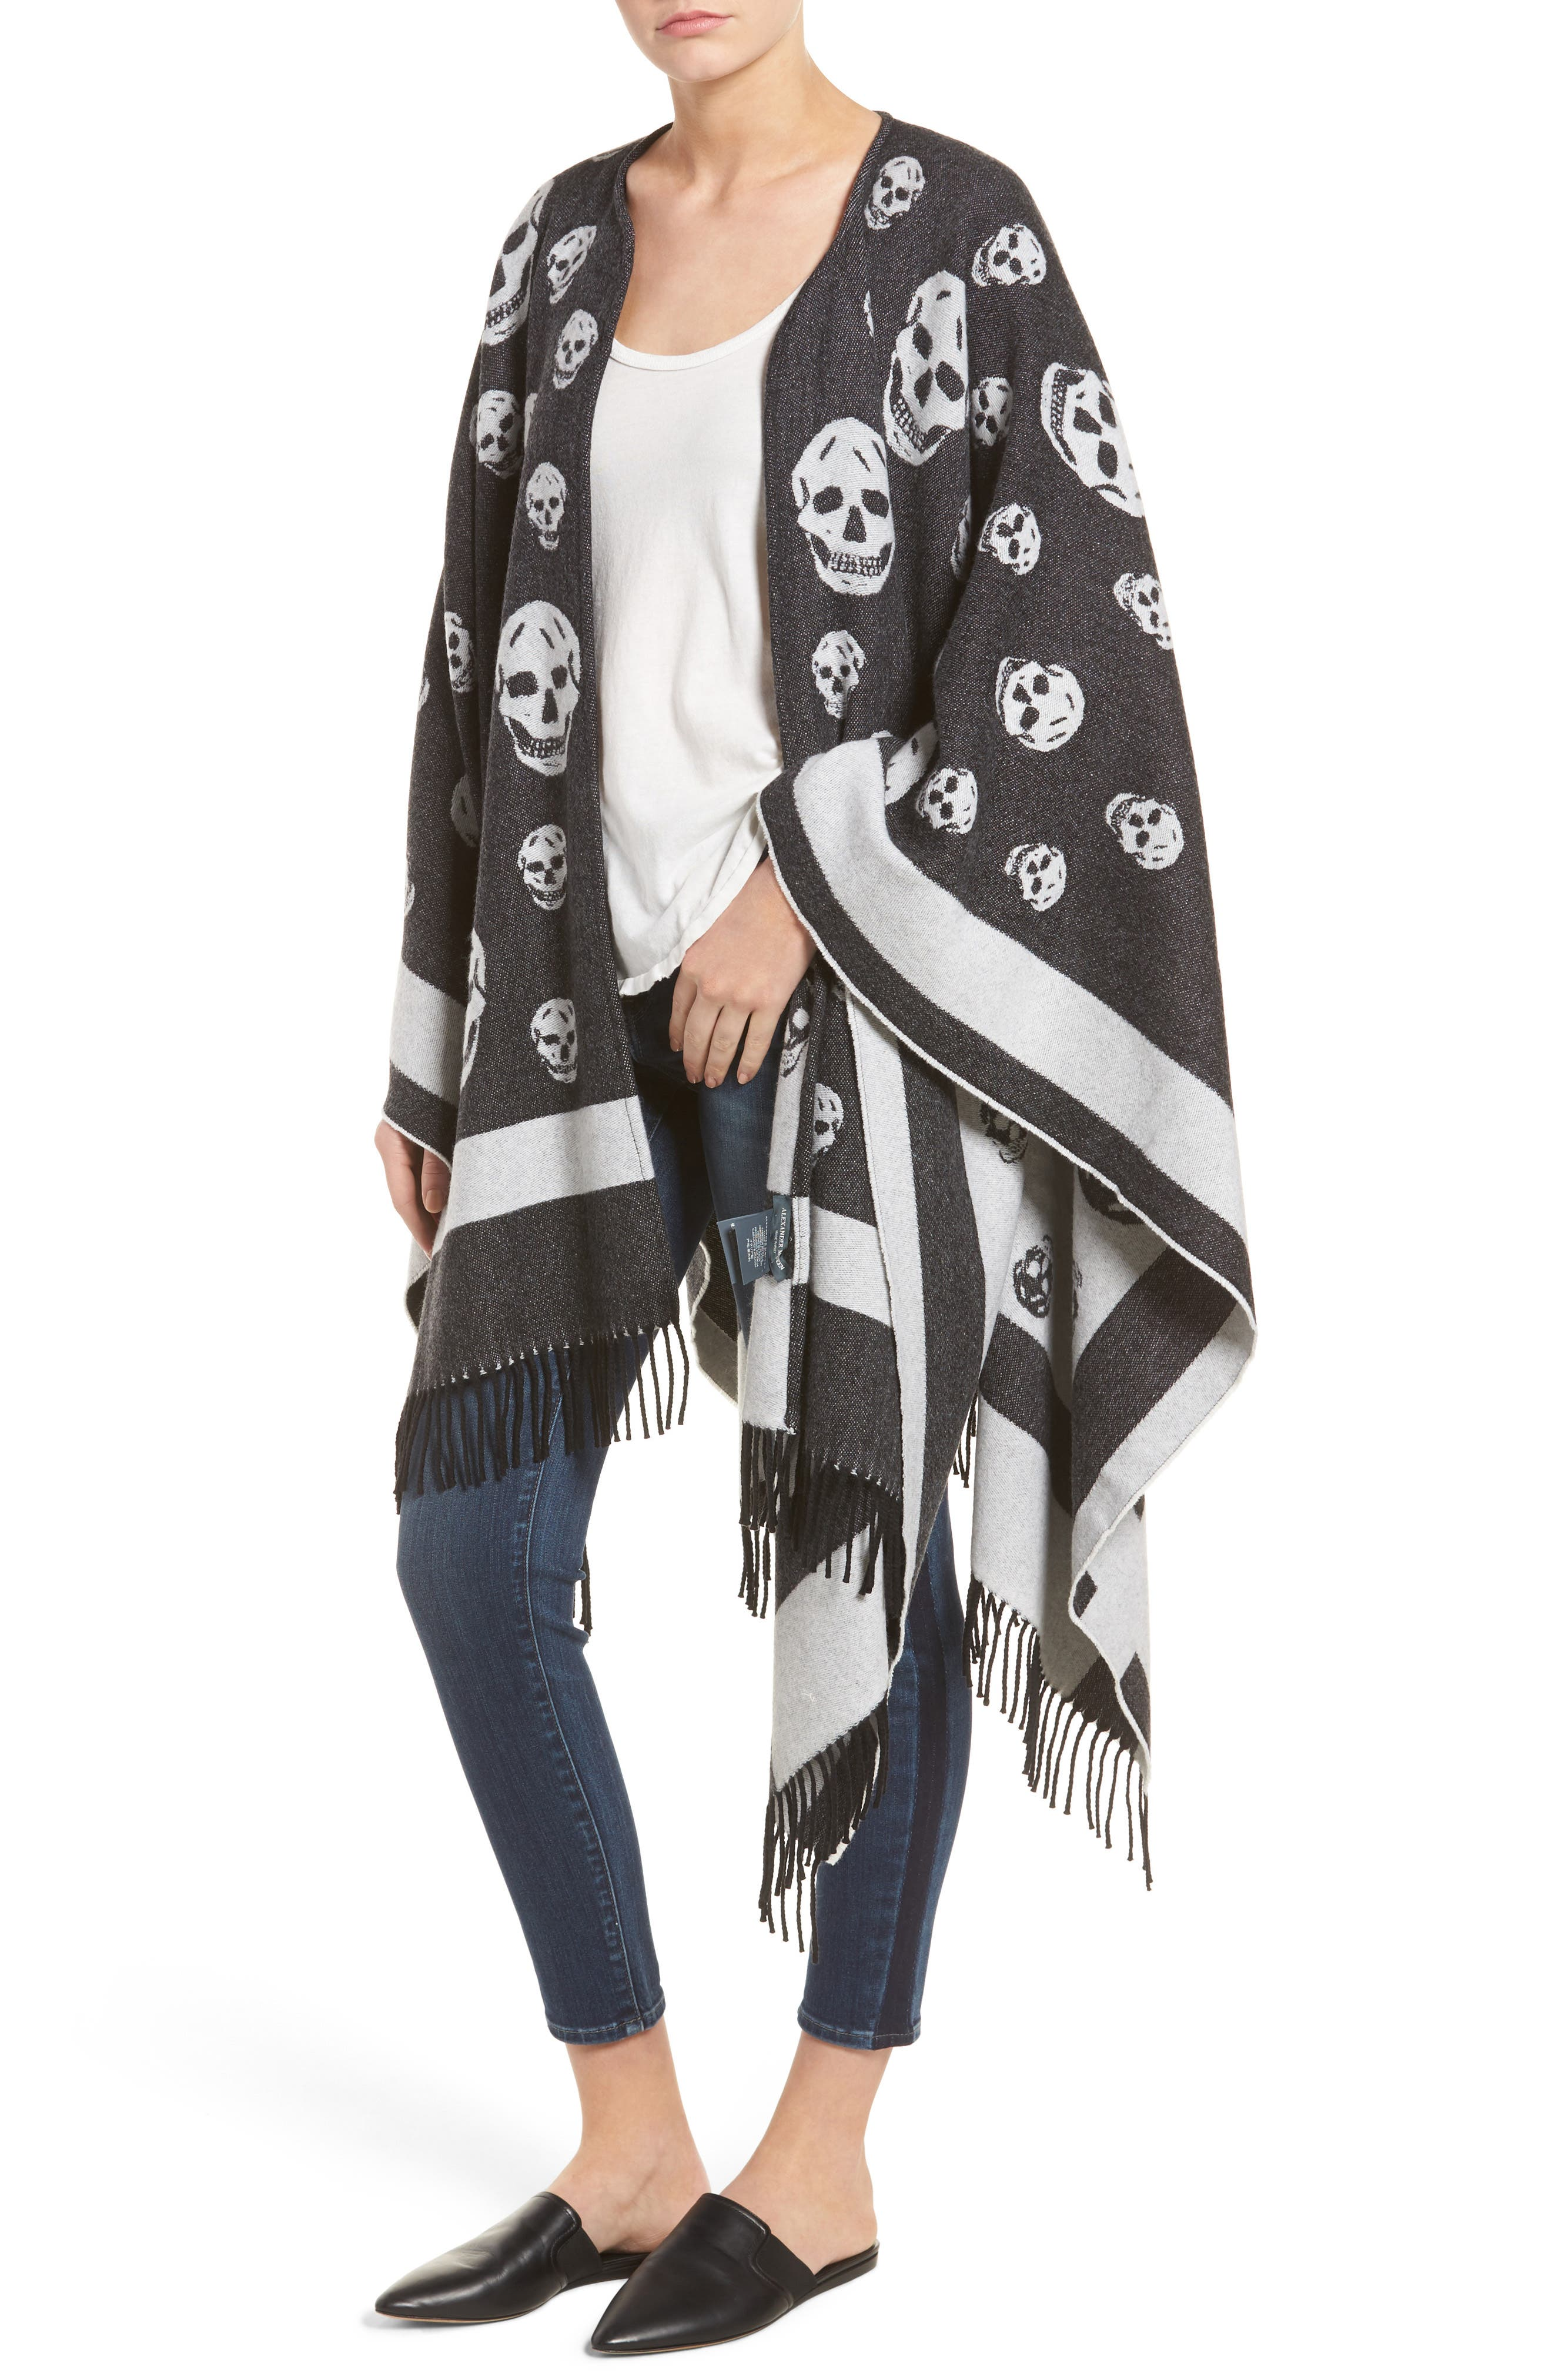 Alexander McQueen 'Big Skull' Wool & Cashmere Jacquard Poncho